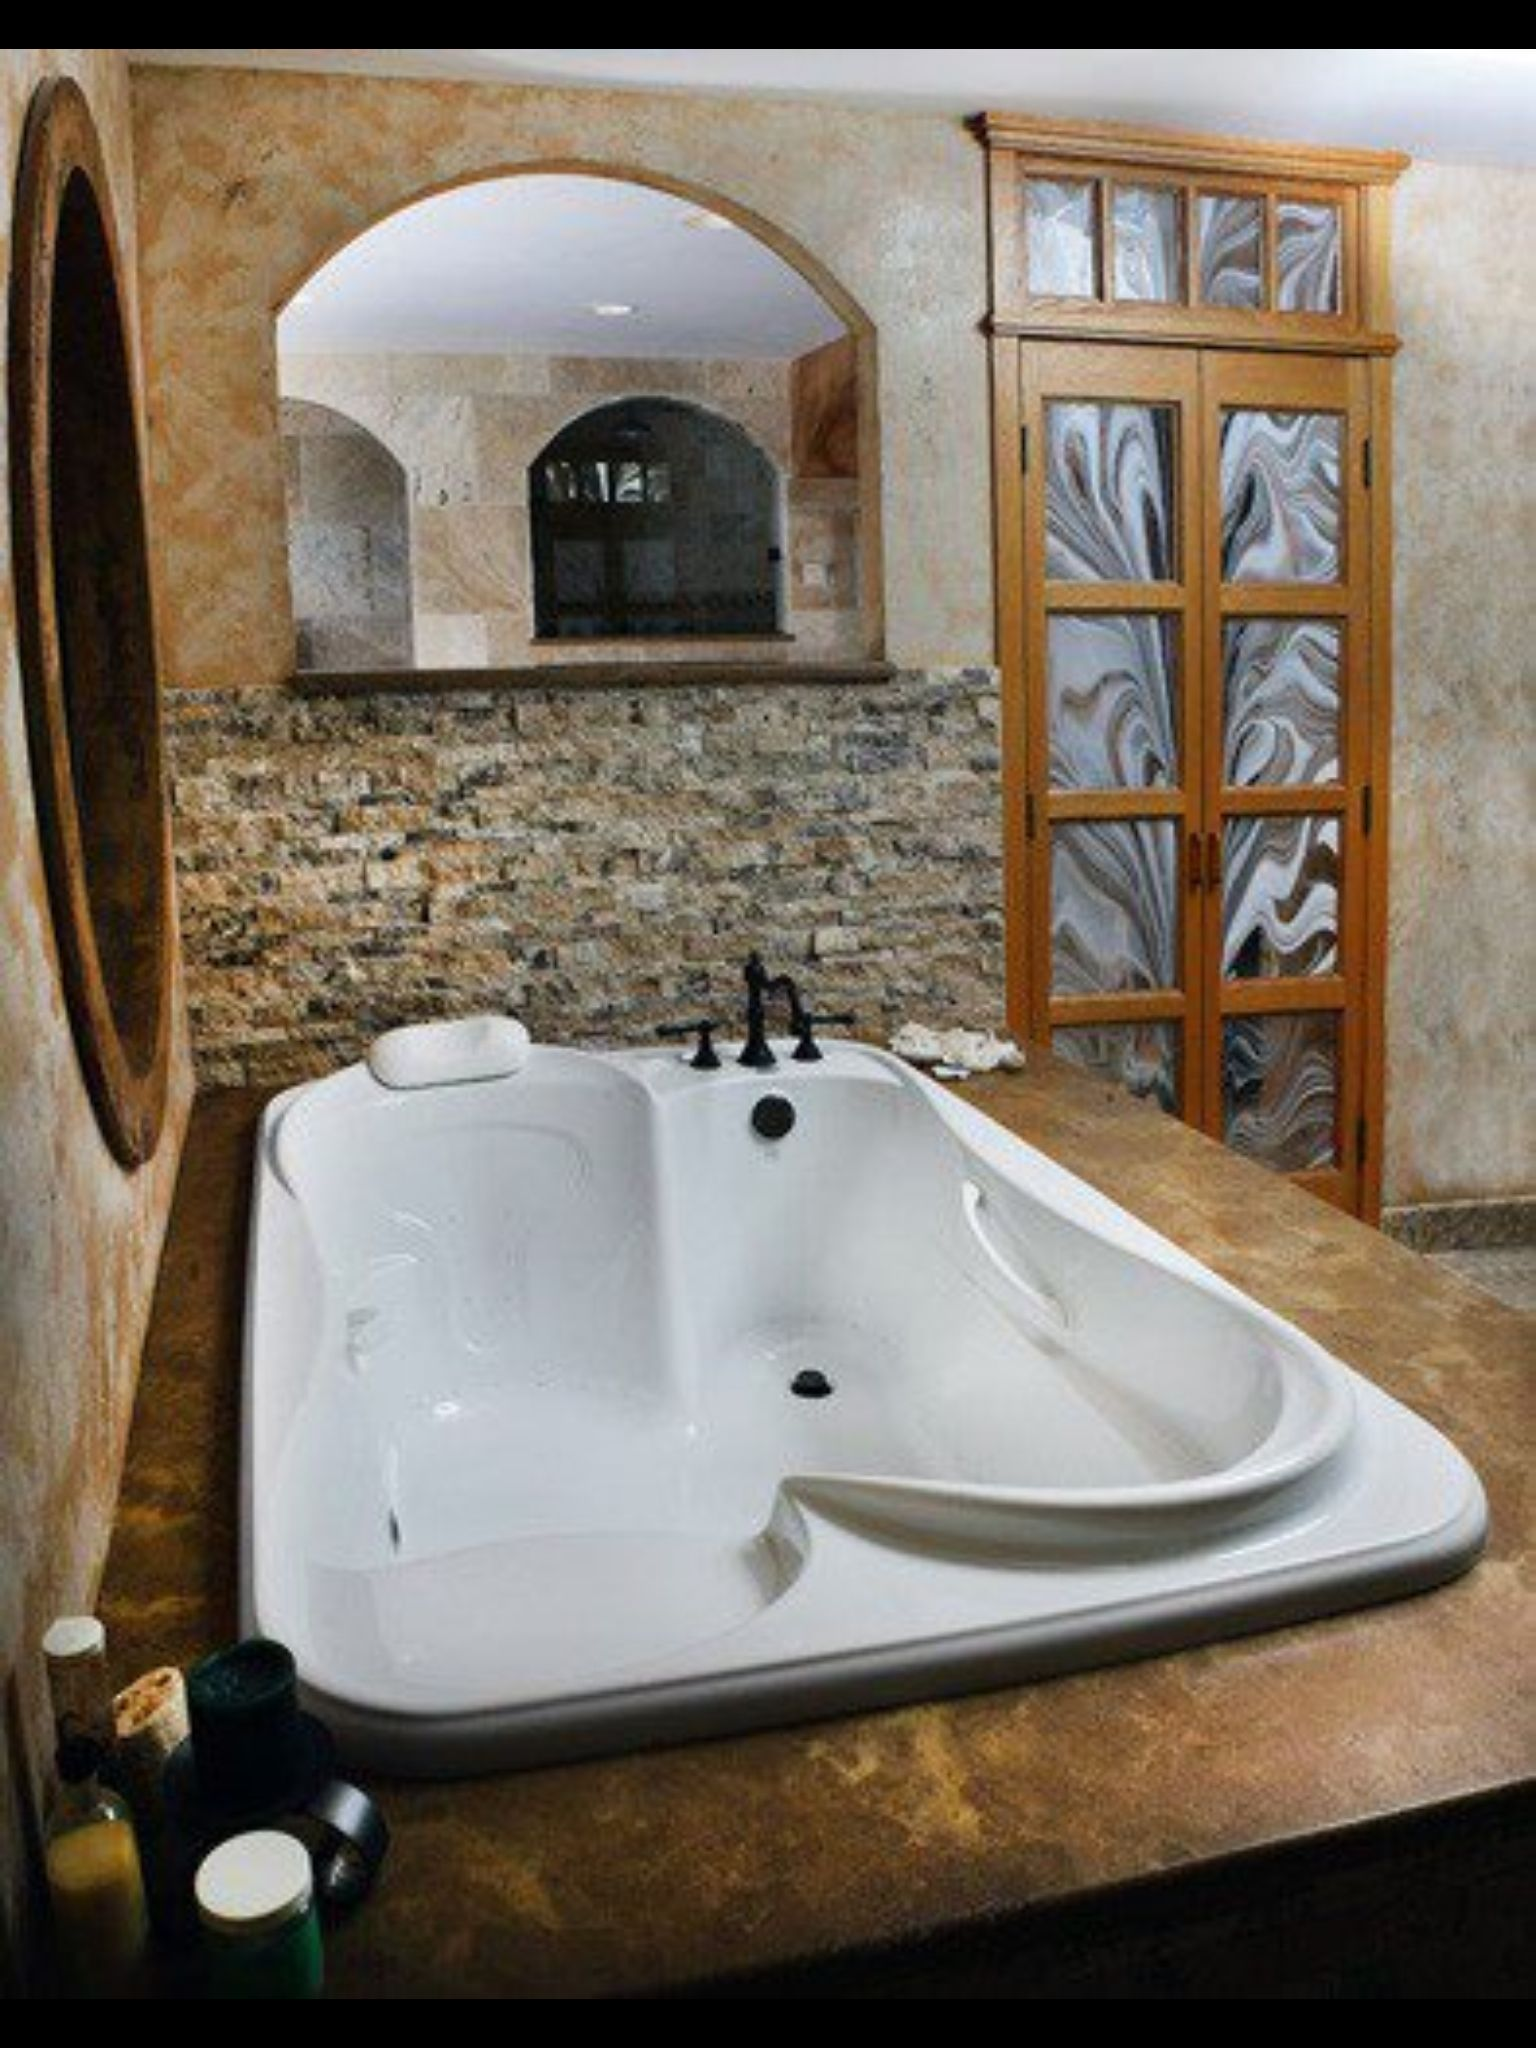 Oodles Of Bubbles Fun And Romance Bathtubs For Two Dream